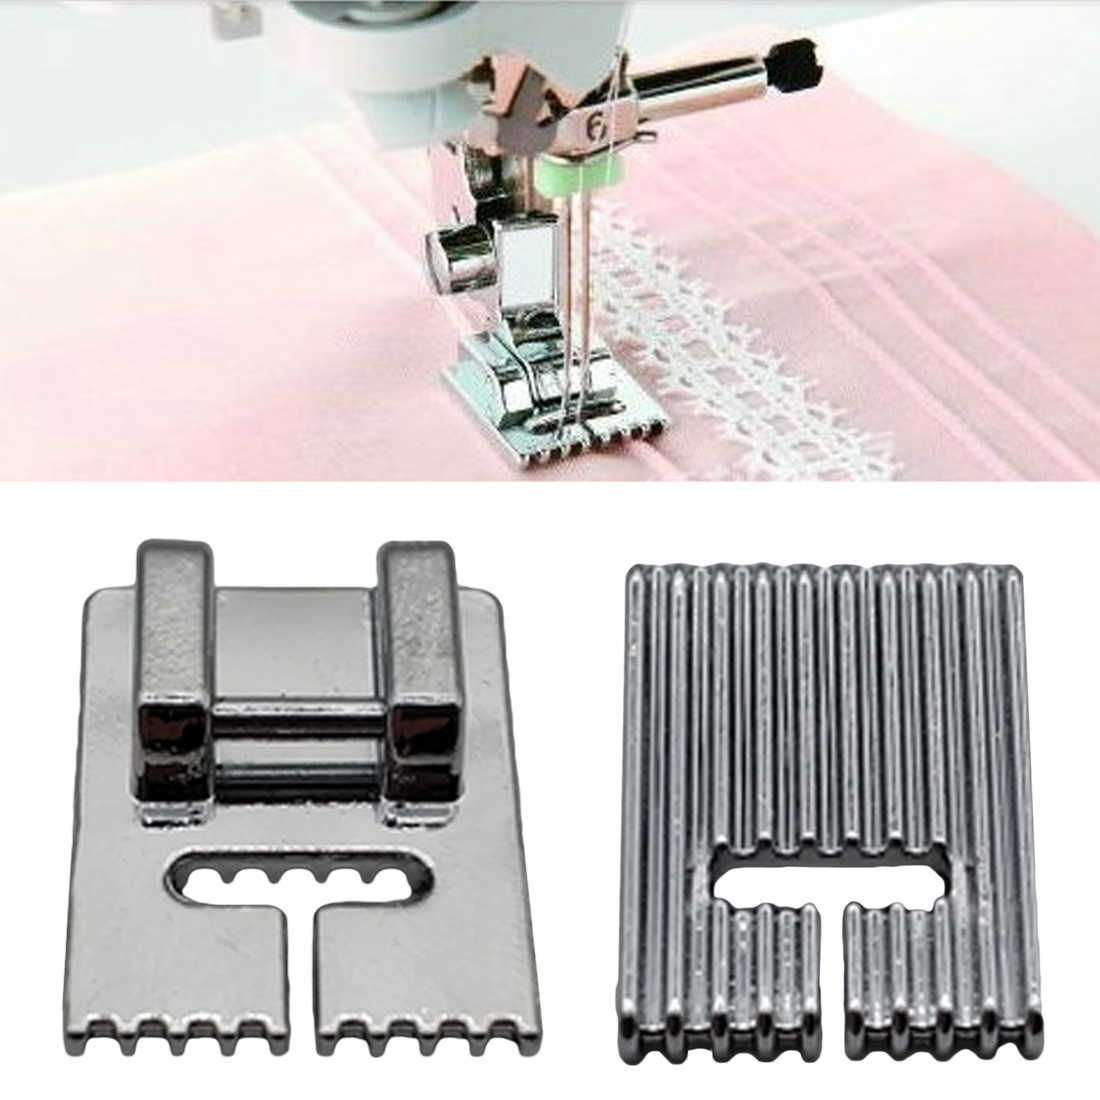 Household Sewing 5/7/9 Grooves Sewing Machine Foot Making Pleat Tank Presser Feet For Machine Accessories